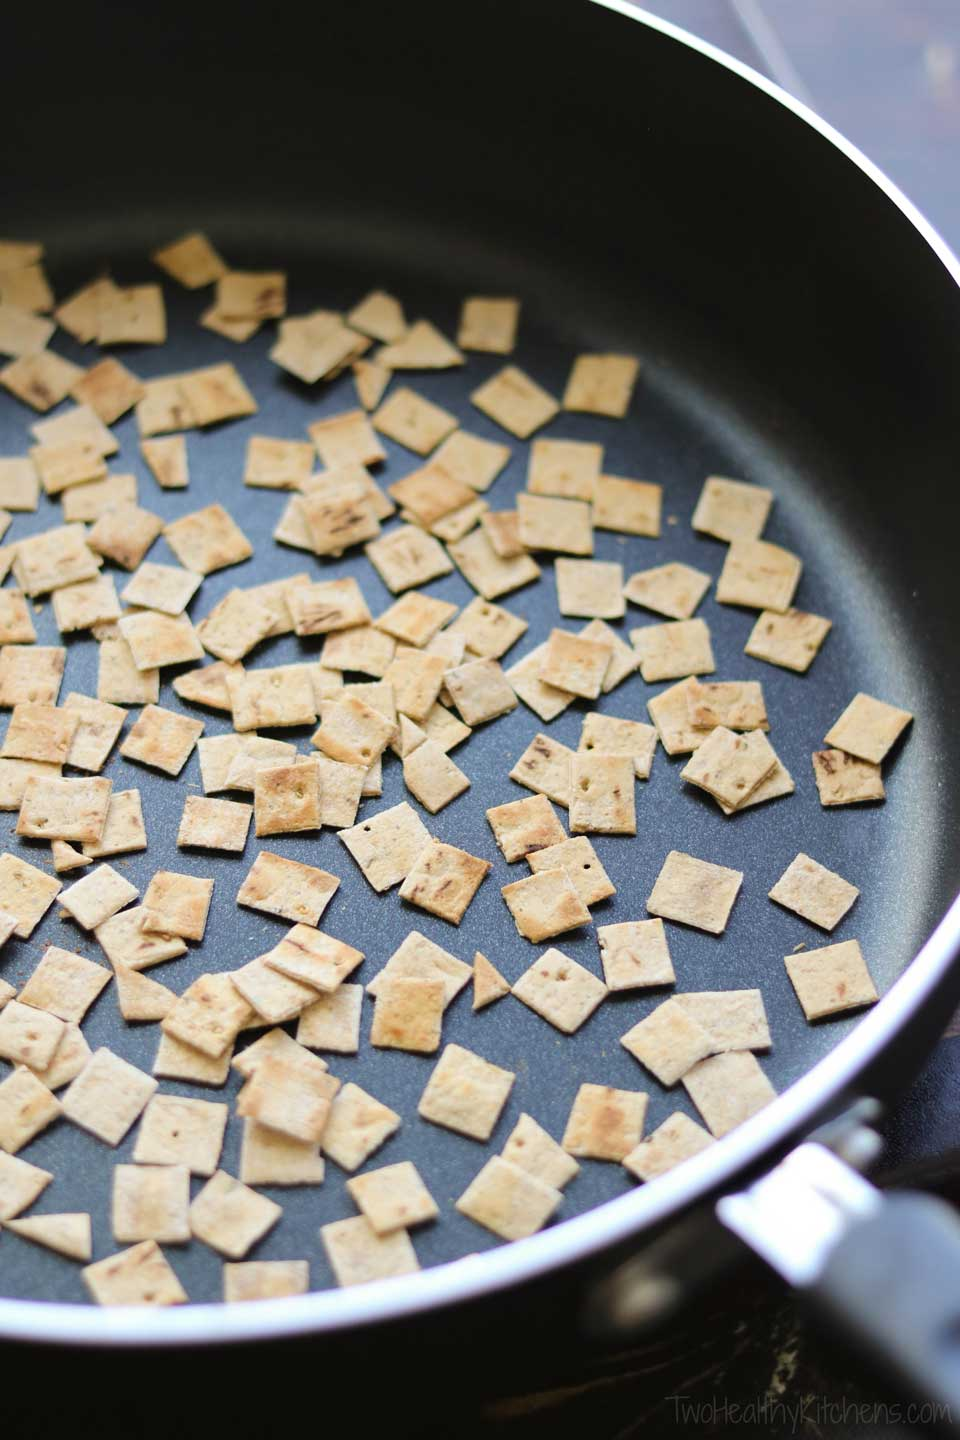 The toasted flatbread croutons smell so good, full of yummy Italian-spiced flavors!